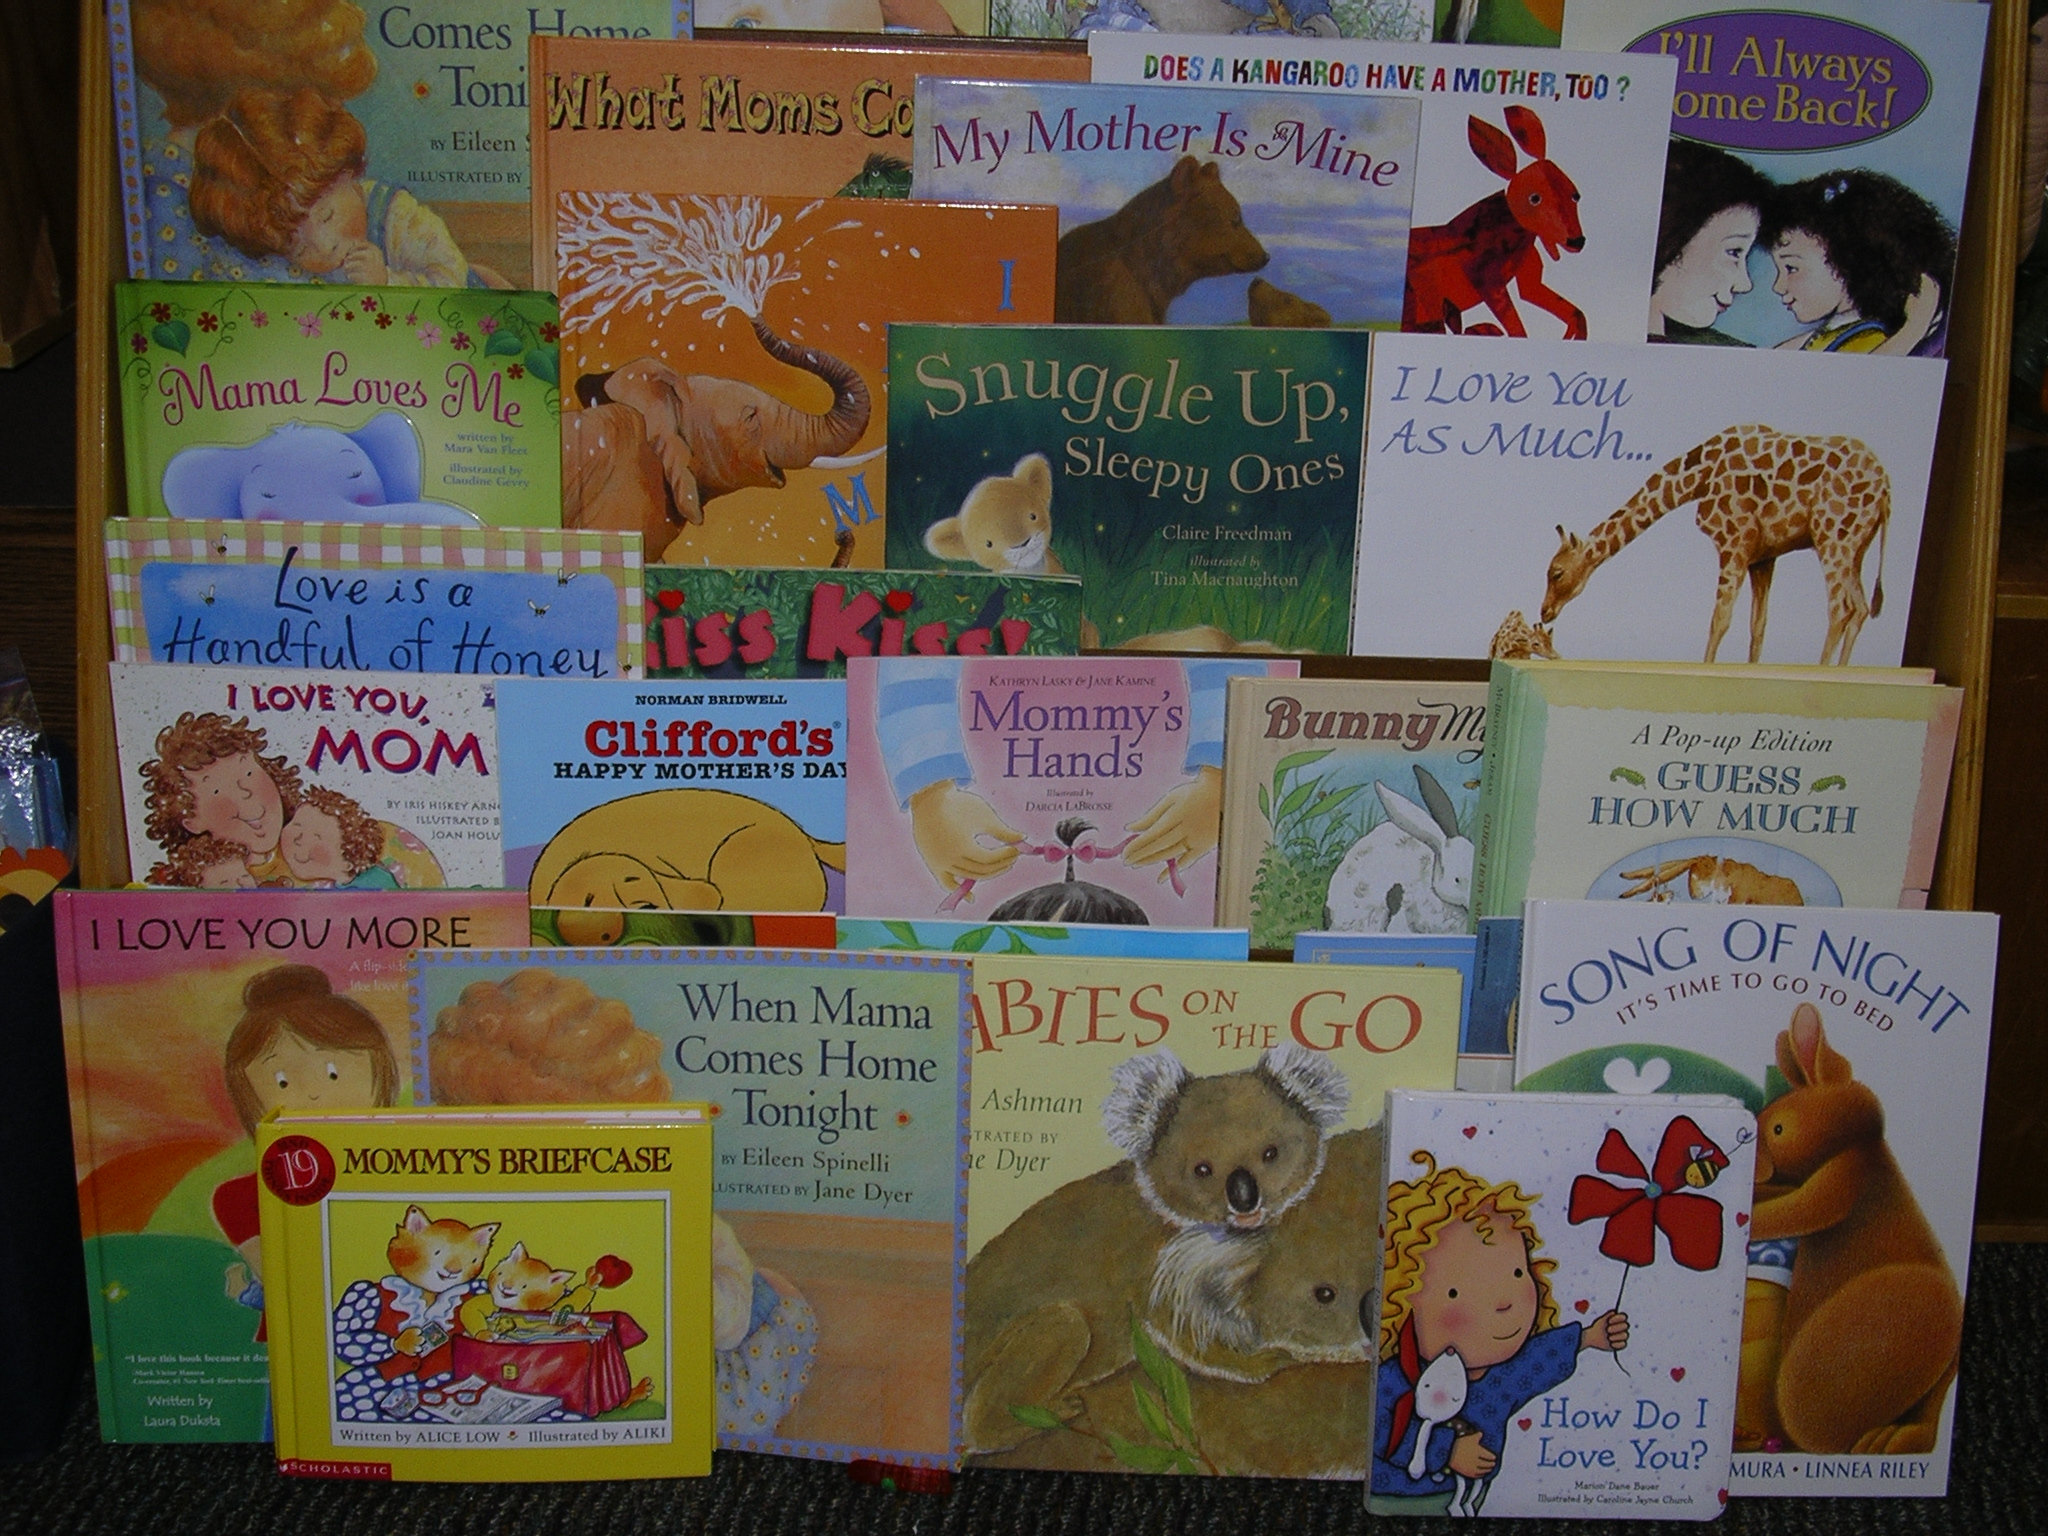 May books, Mother's day books, great books for May, frog books, flower books, sunflower books